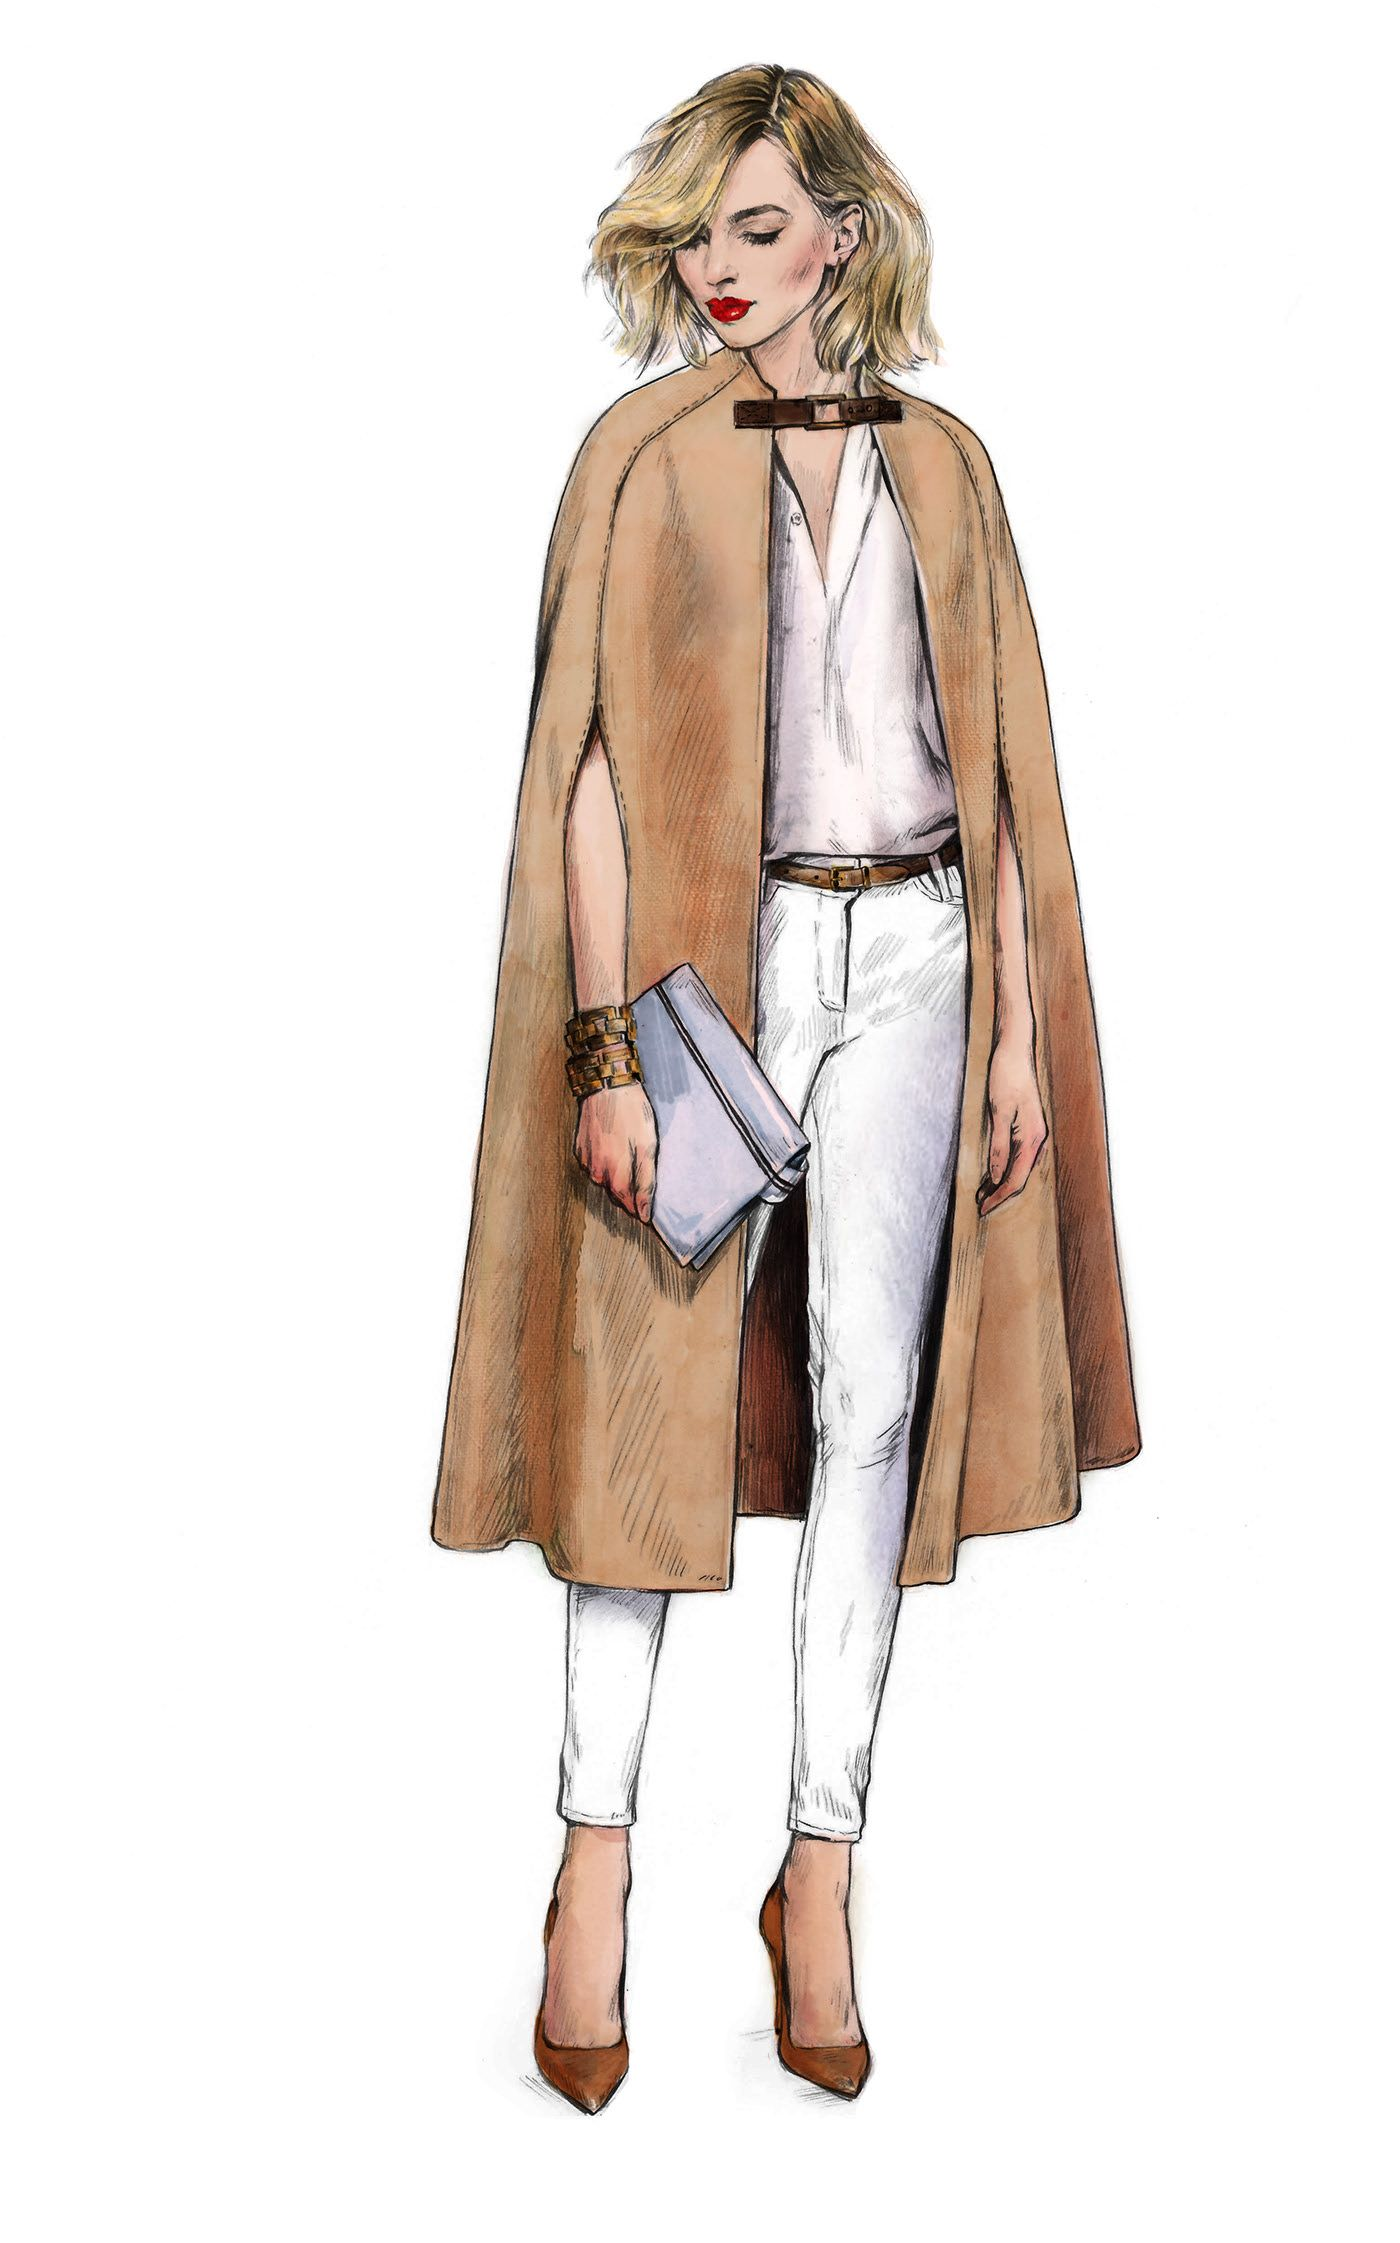 Illustrations for Cocoon Luxury Wear.